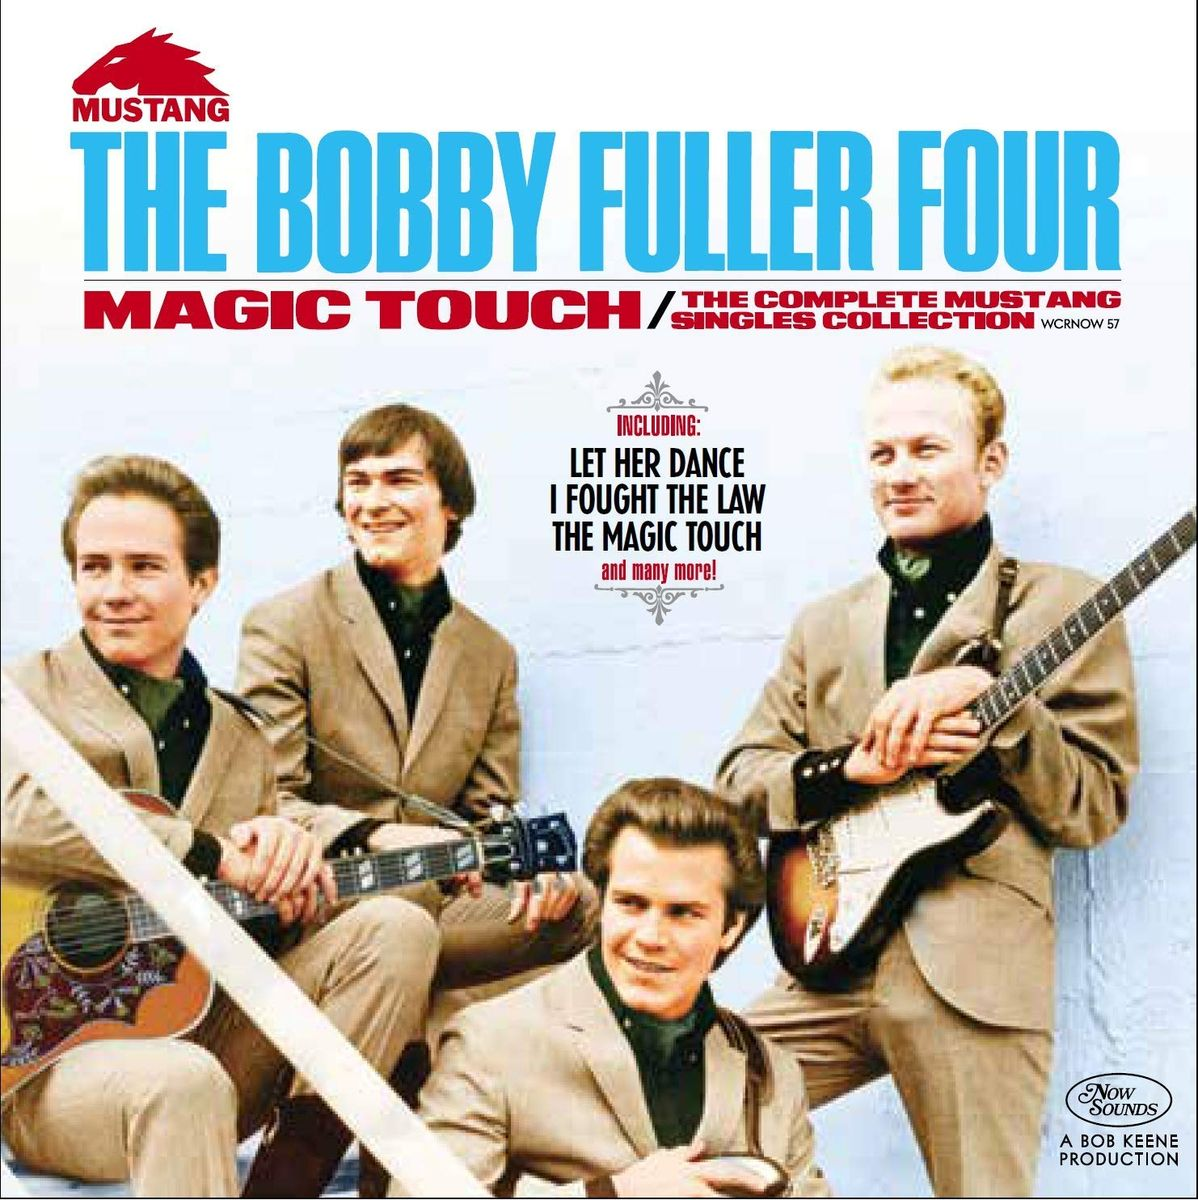 The Bobby Fuller Four The Bobby Fuller Four. Magic Touch: The Complete Mustang Singles Collection catalog fuller transmission